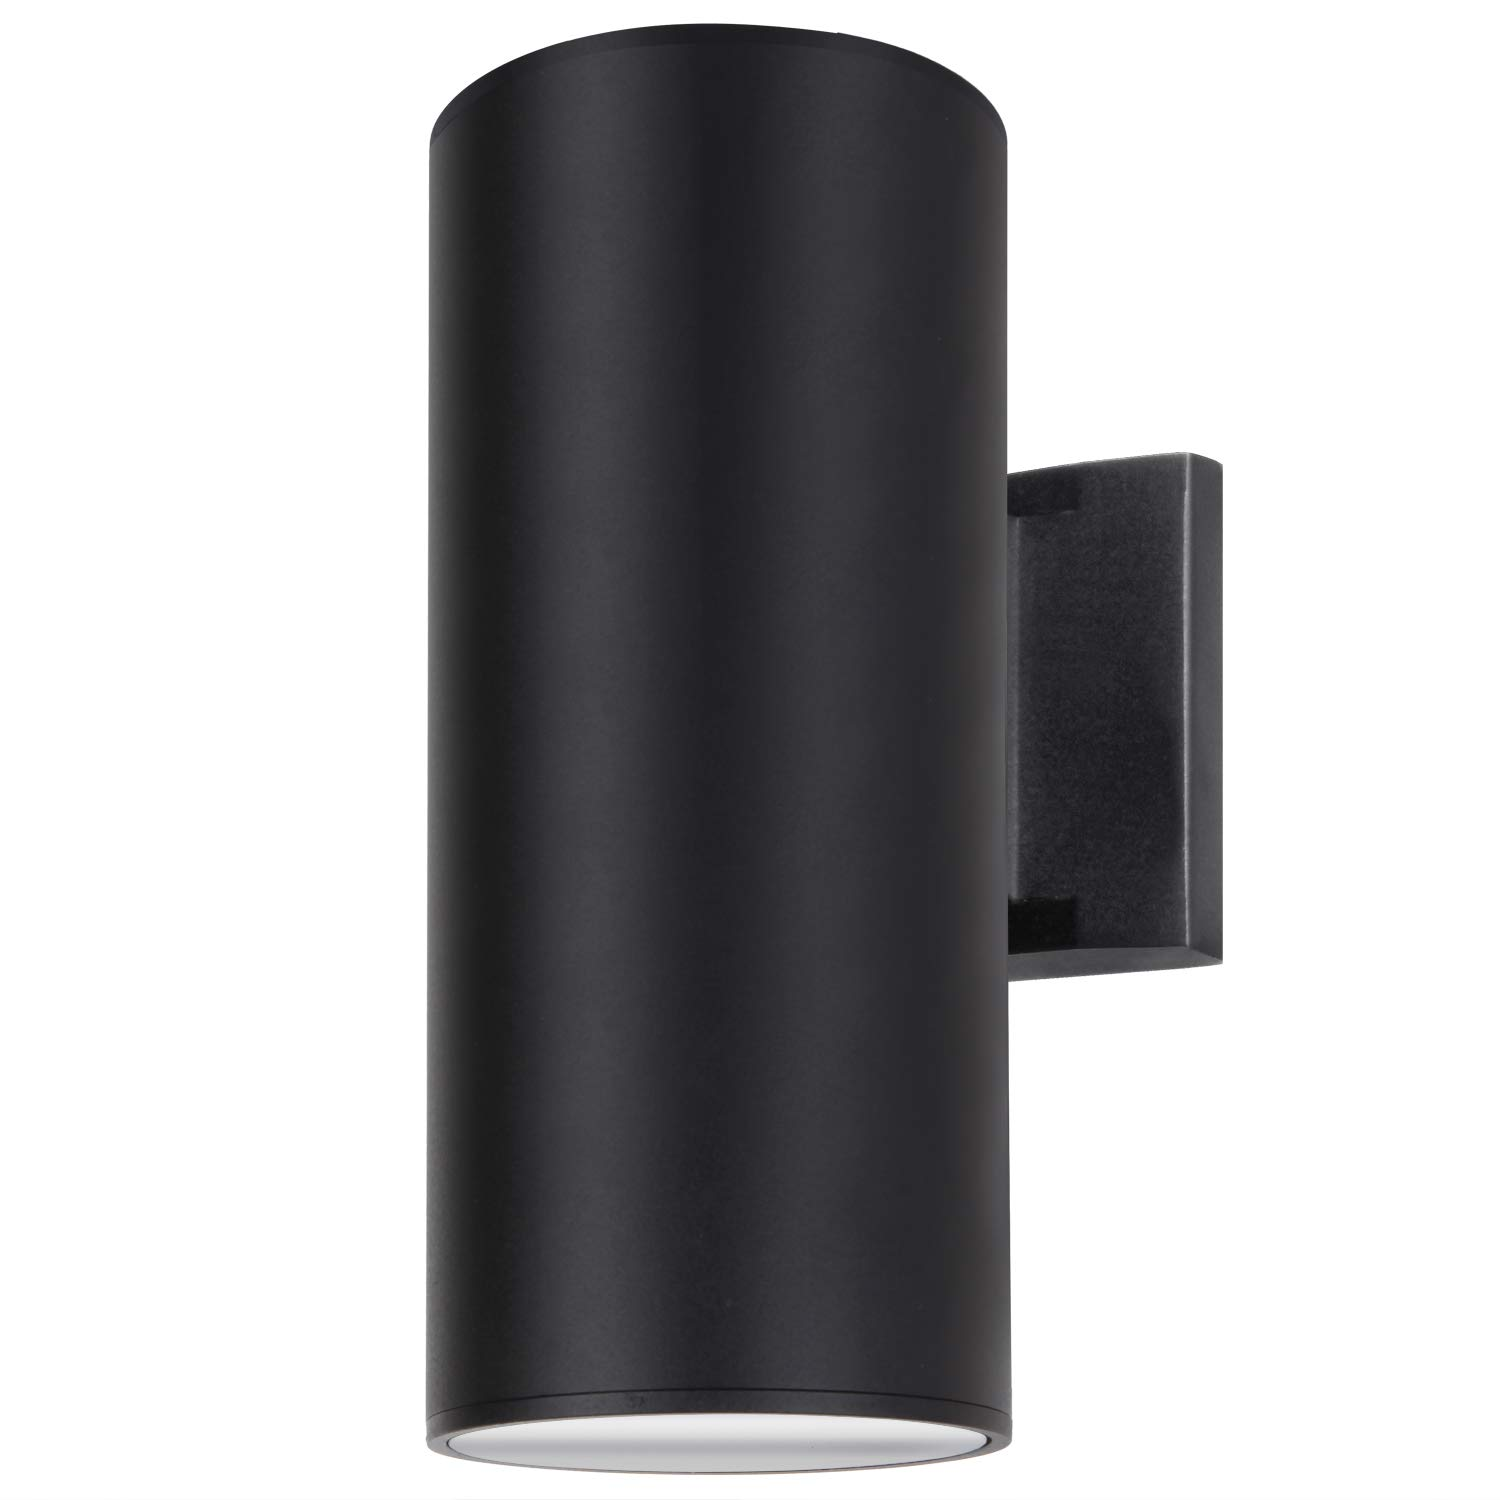 Outdoor Wall Light, ZUUKOLE Exterior Lighting - ETL Listed, Die-Casting Aluminum Waterproof Wall Mount Cylinder Design - Up Down Light Fixture for Porch, Backyard and Patio (Black)